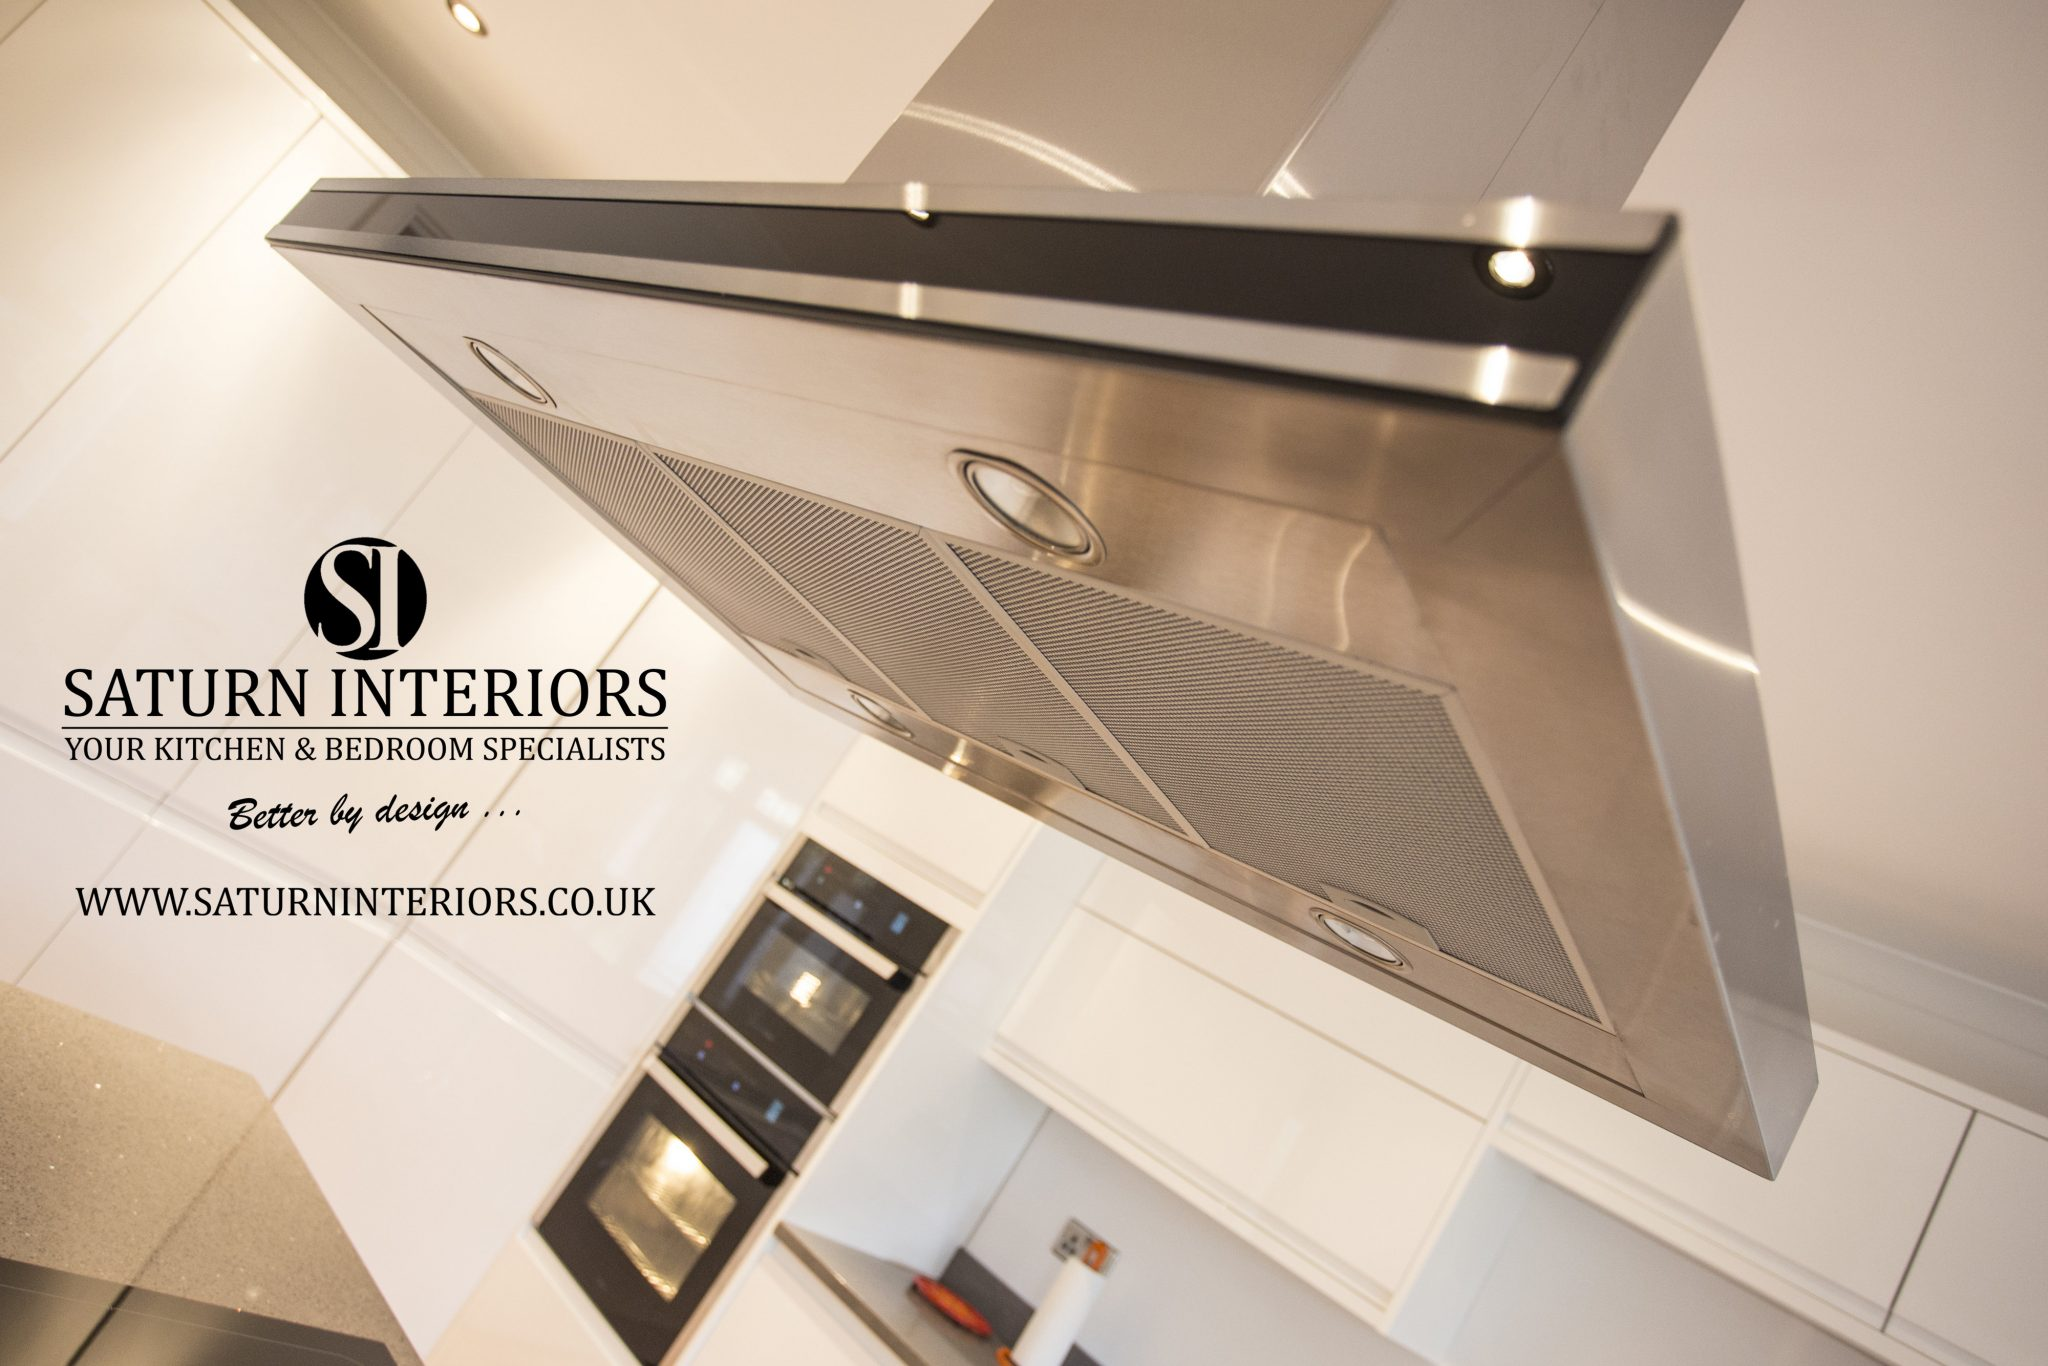 image of chrome overhead extractor fan